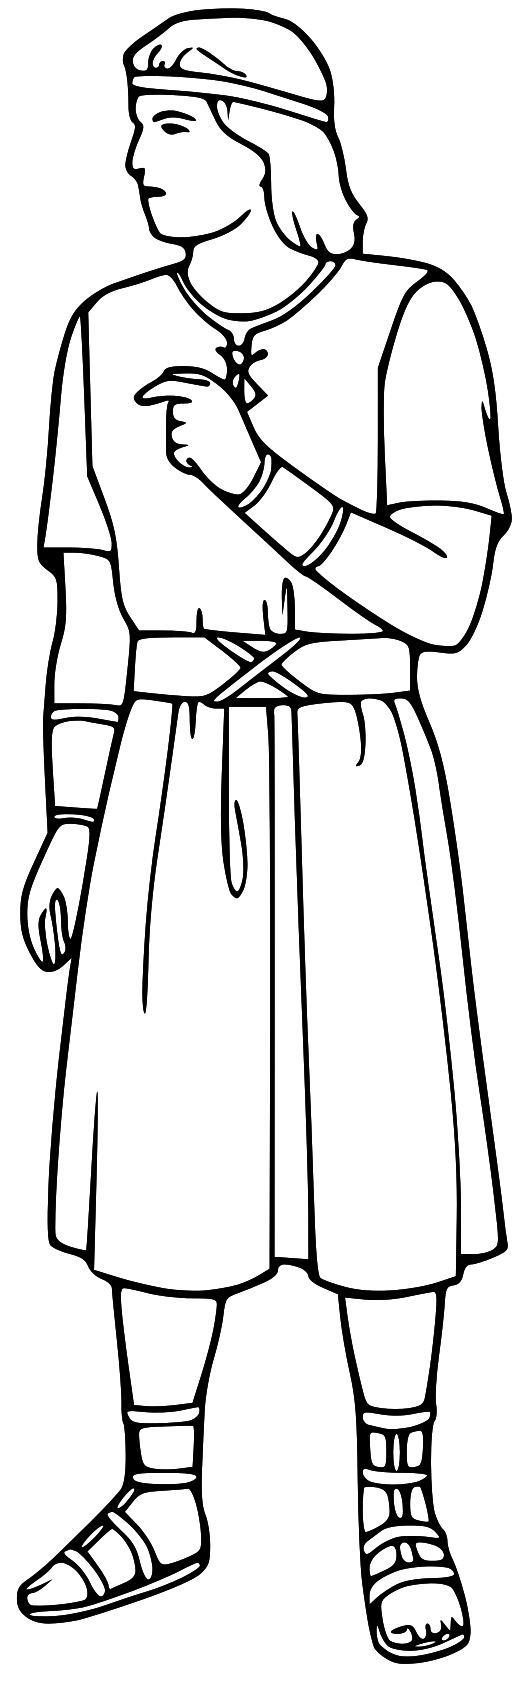 Clipart Black And White Bible Color Activities Clipart Black And White Bible Characters